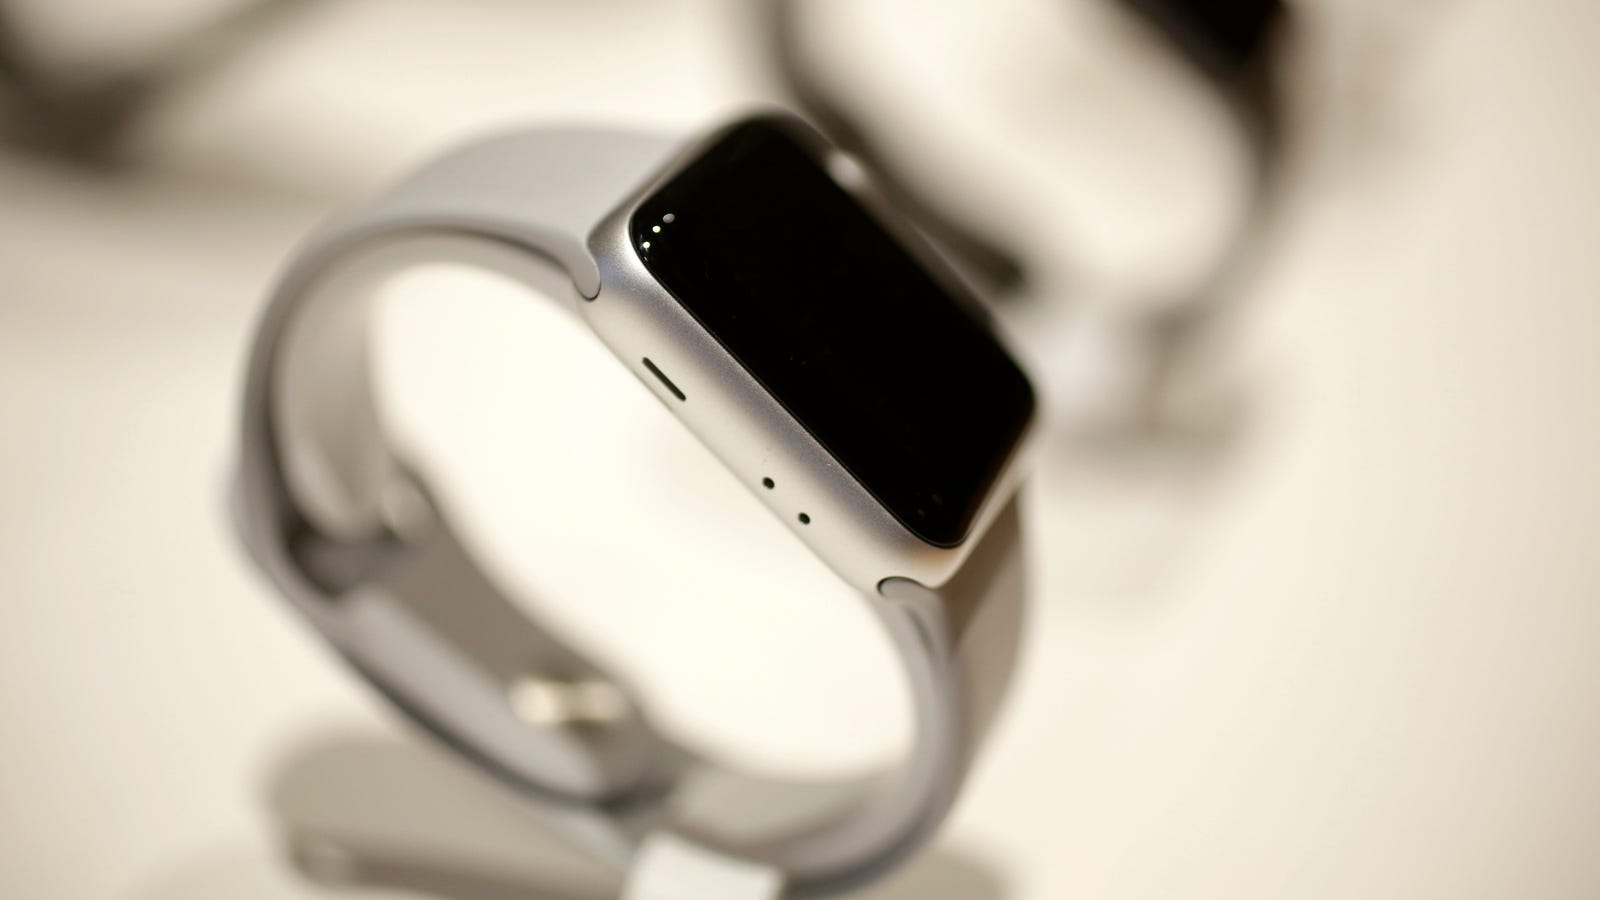 Report: Apple Once Again Extends Apple Watch Warranties, This Time for Battery Issues